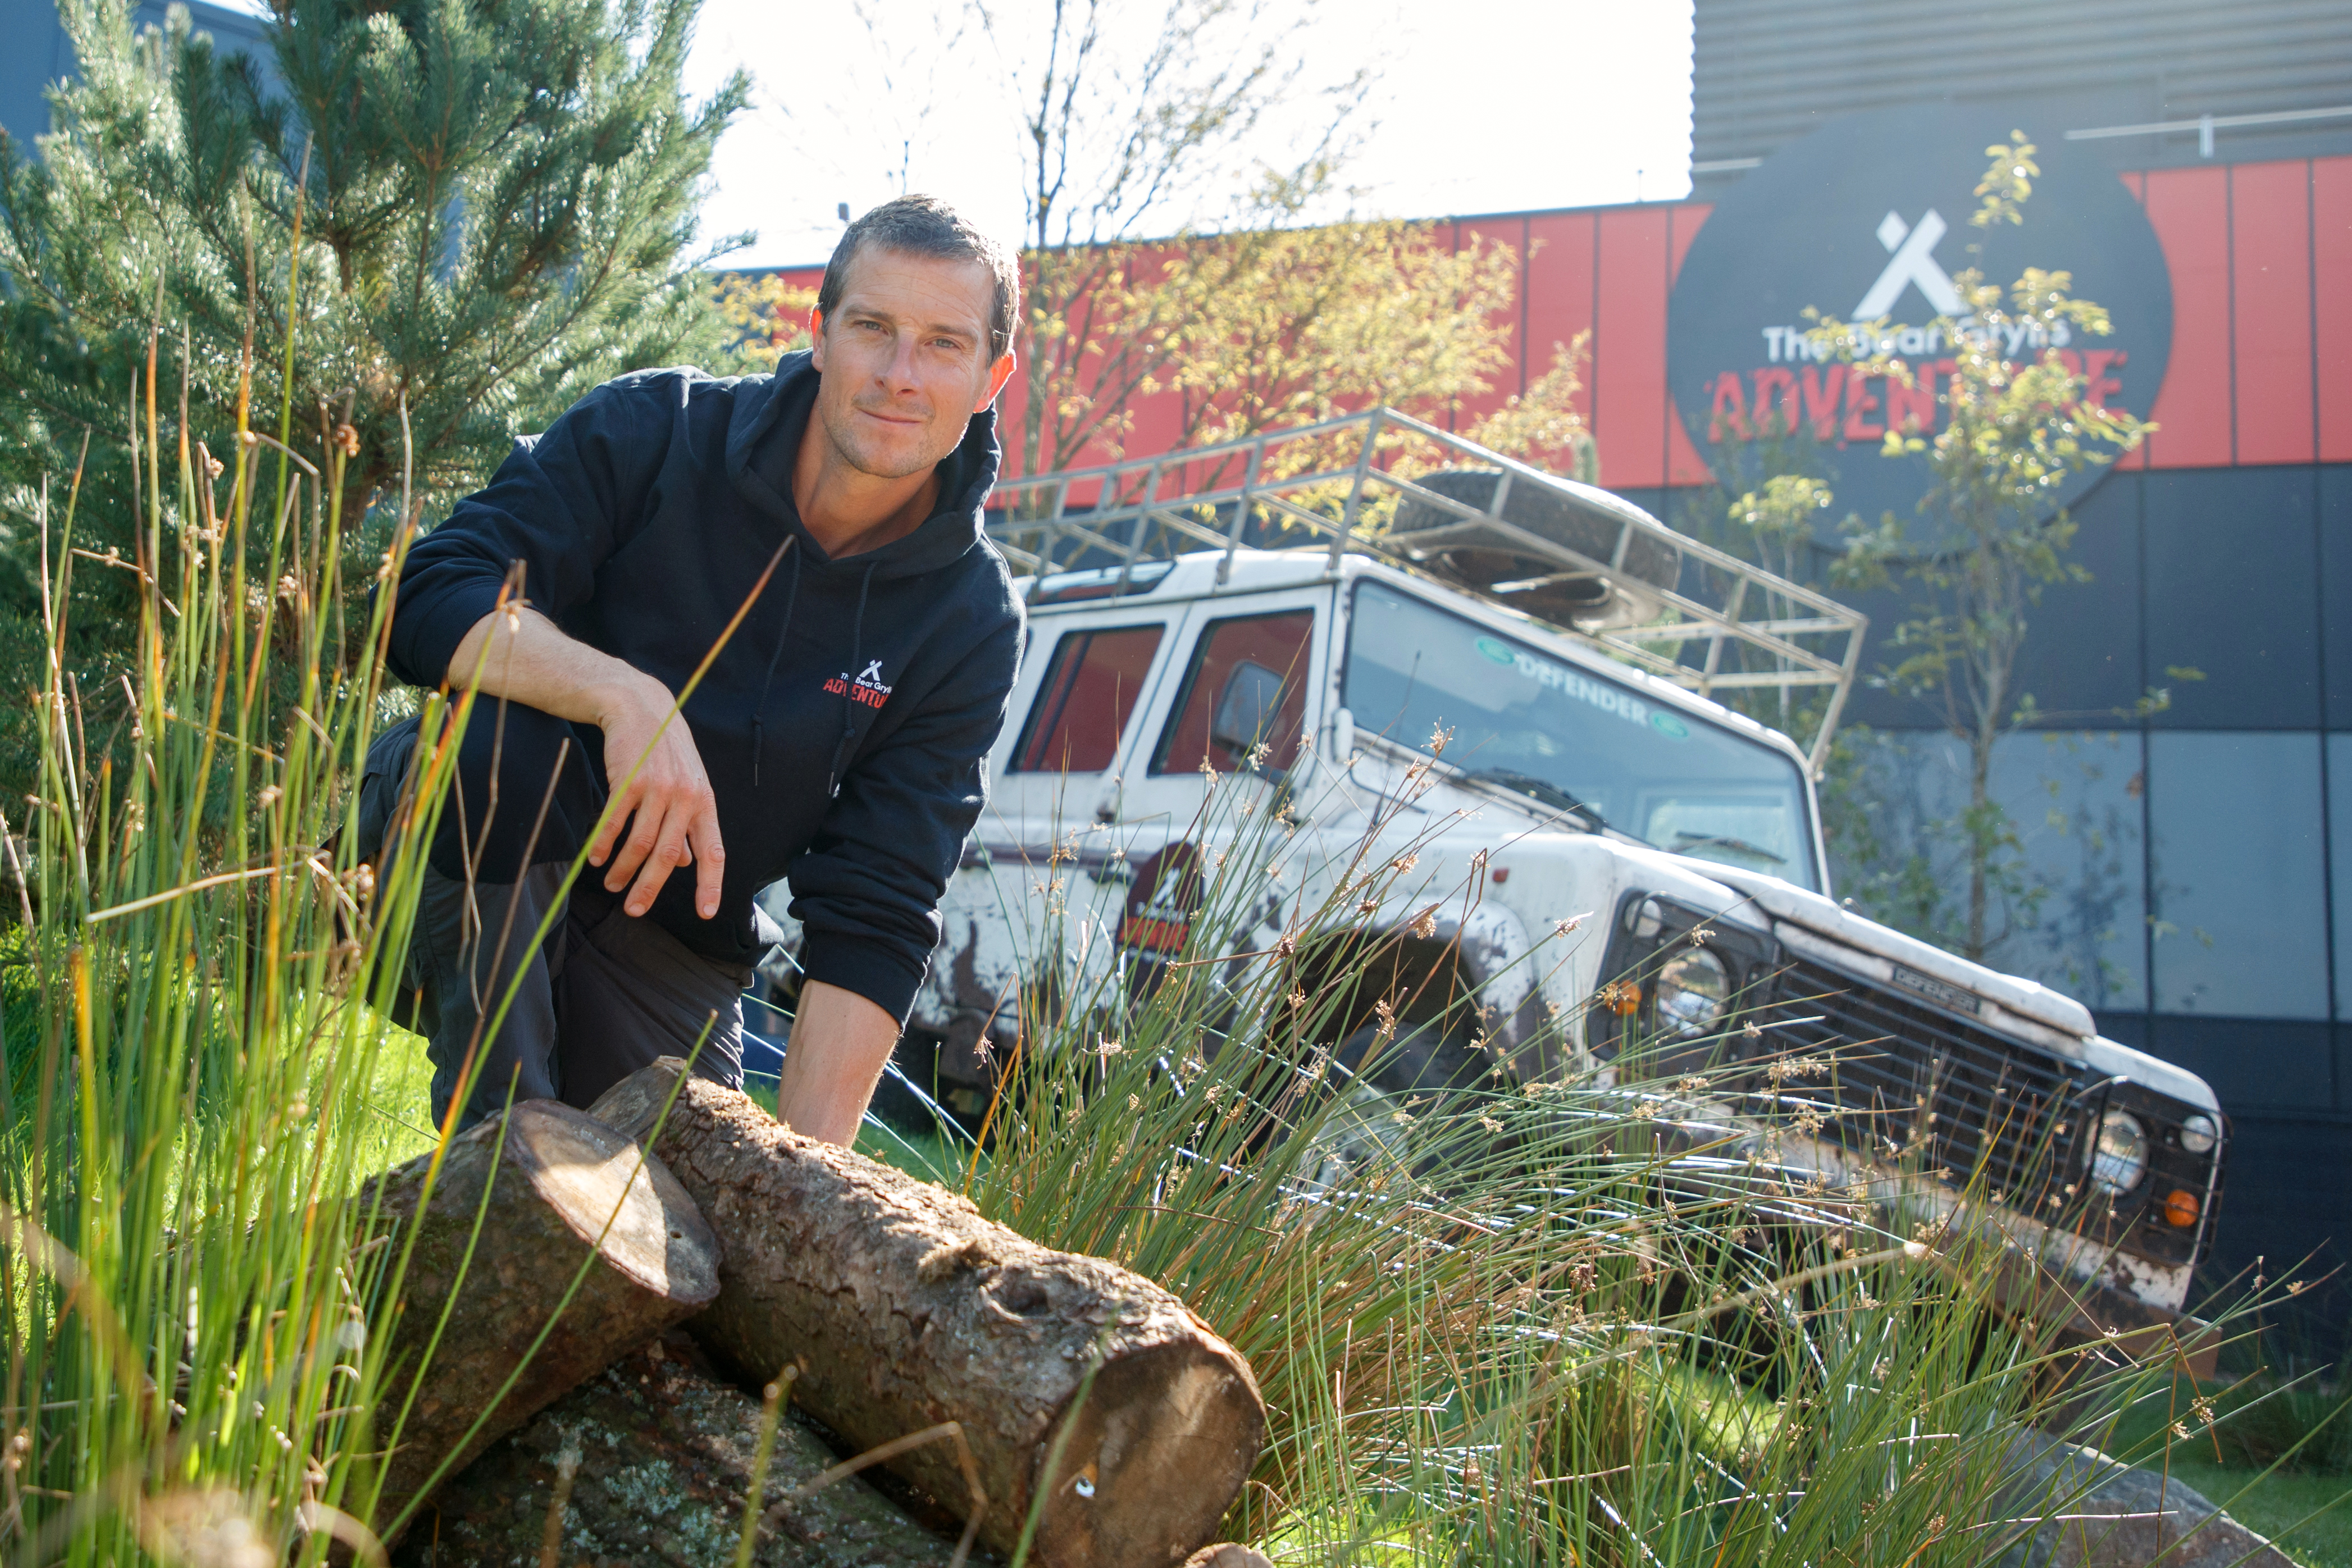 THE BEAR GRYLLS ADVENTURE LAUNCH